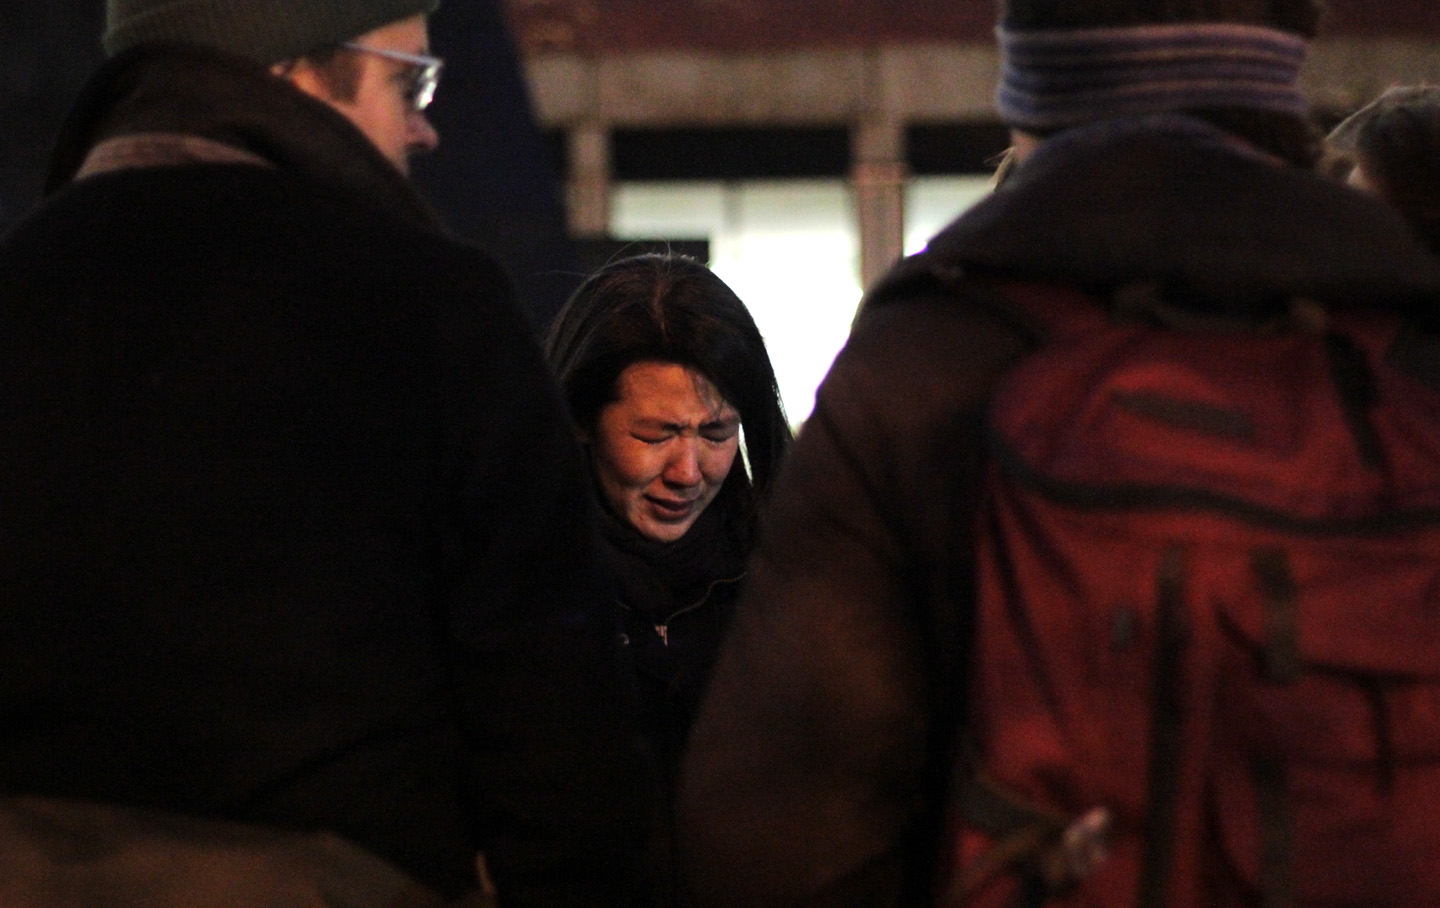 Disappointment for #EricGarner's army of prayer warriors and freedom